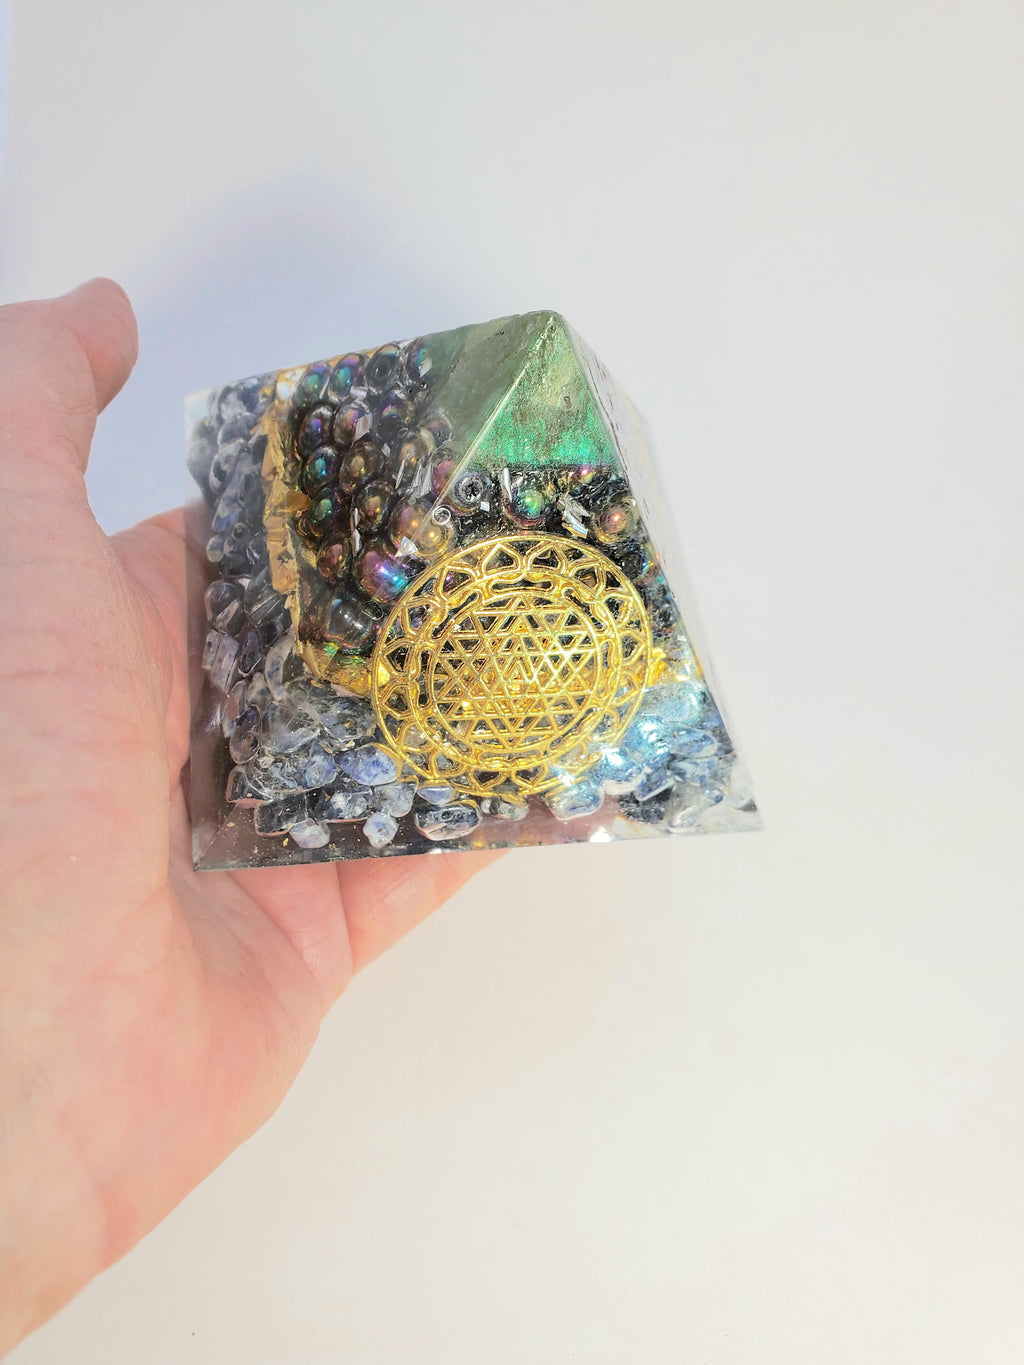 Chi Enhancing Pyramid — Large Green Rainbow Hematite with Sri Yantra